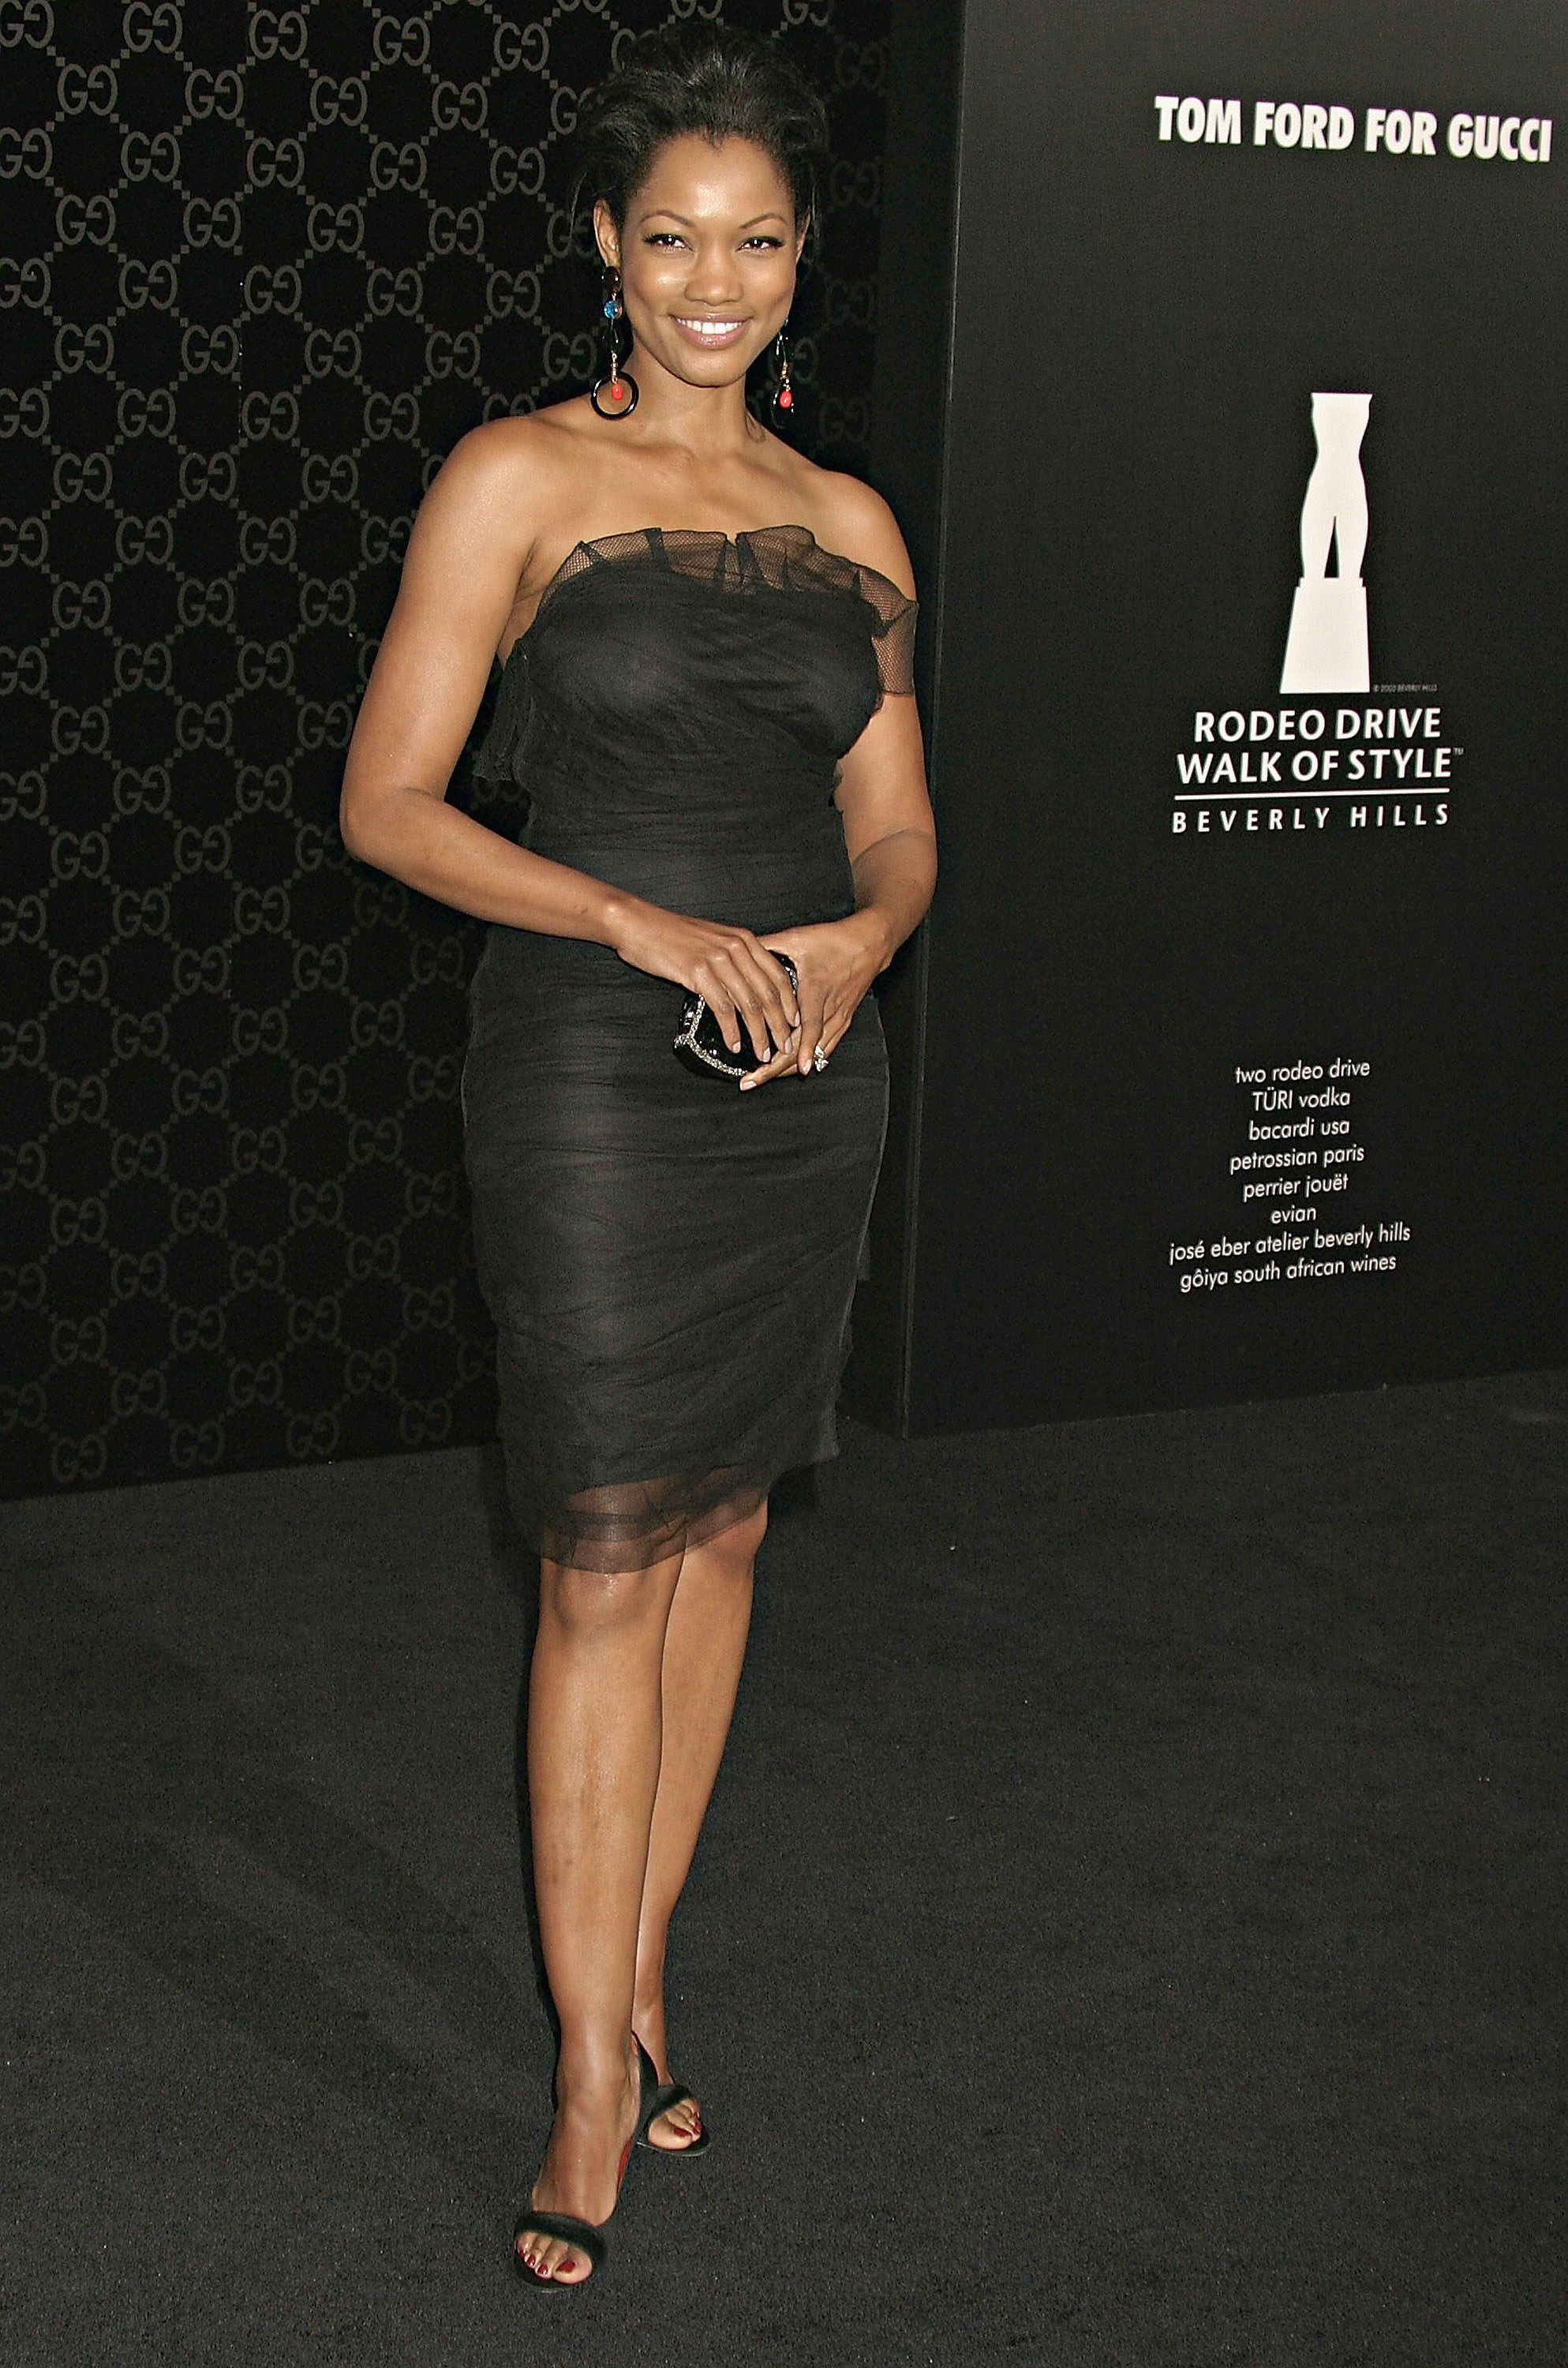 Garcelle Beauvais Rodeo Drive Walk Of Style Honoring Tom